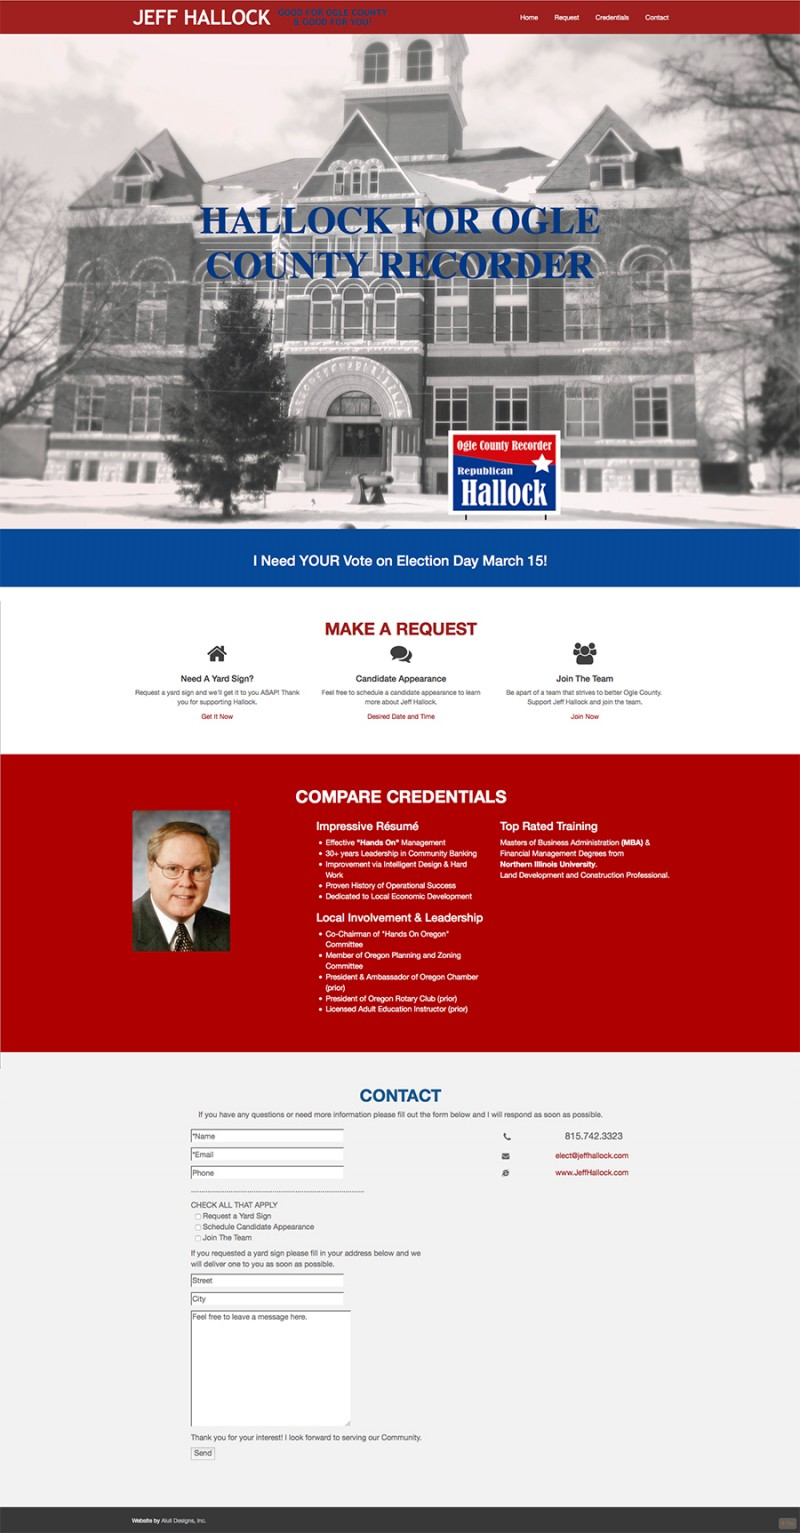 jeff-hallock-website